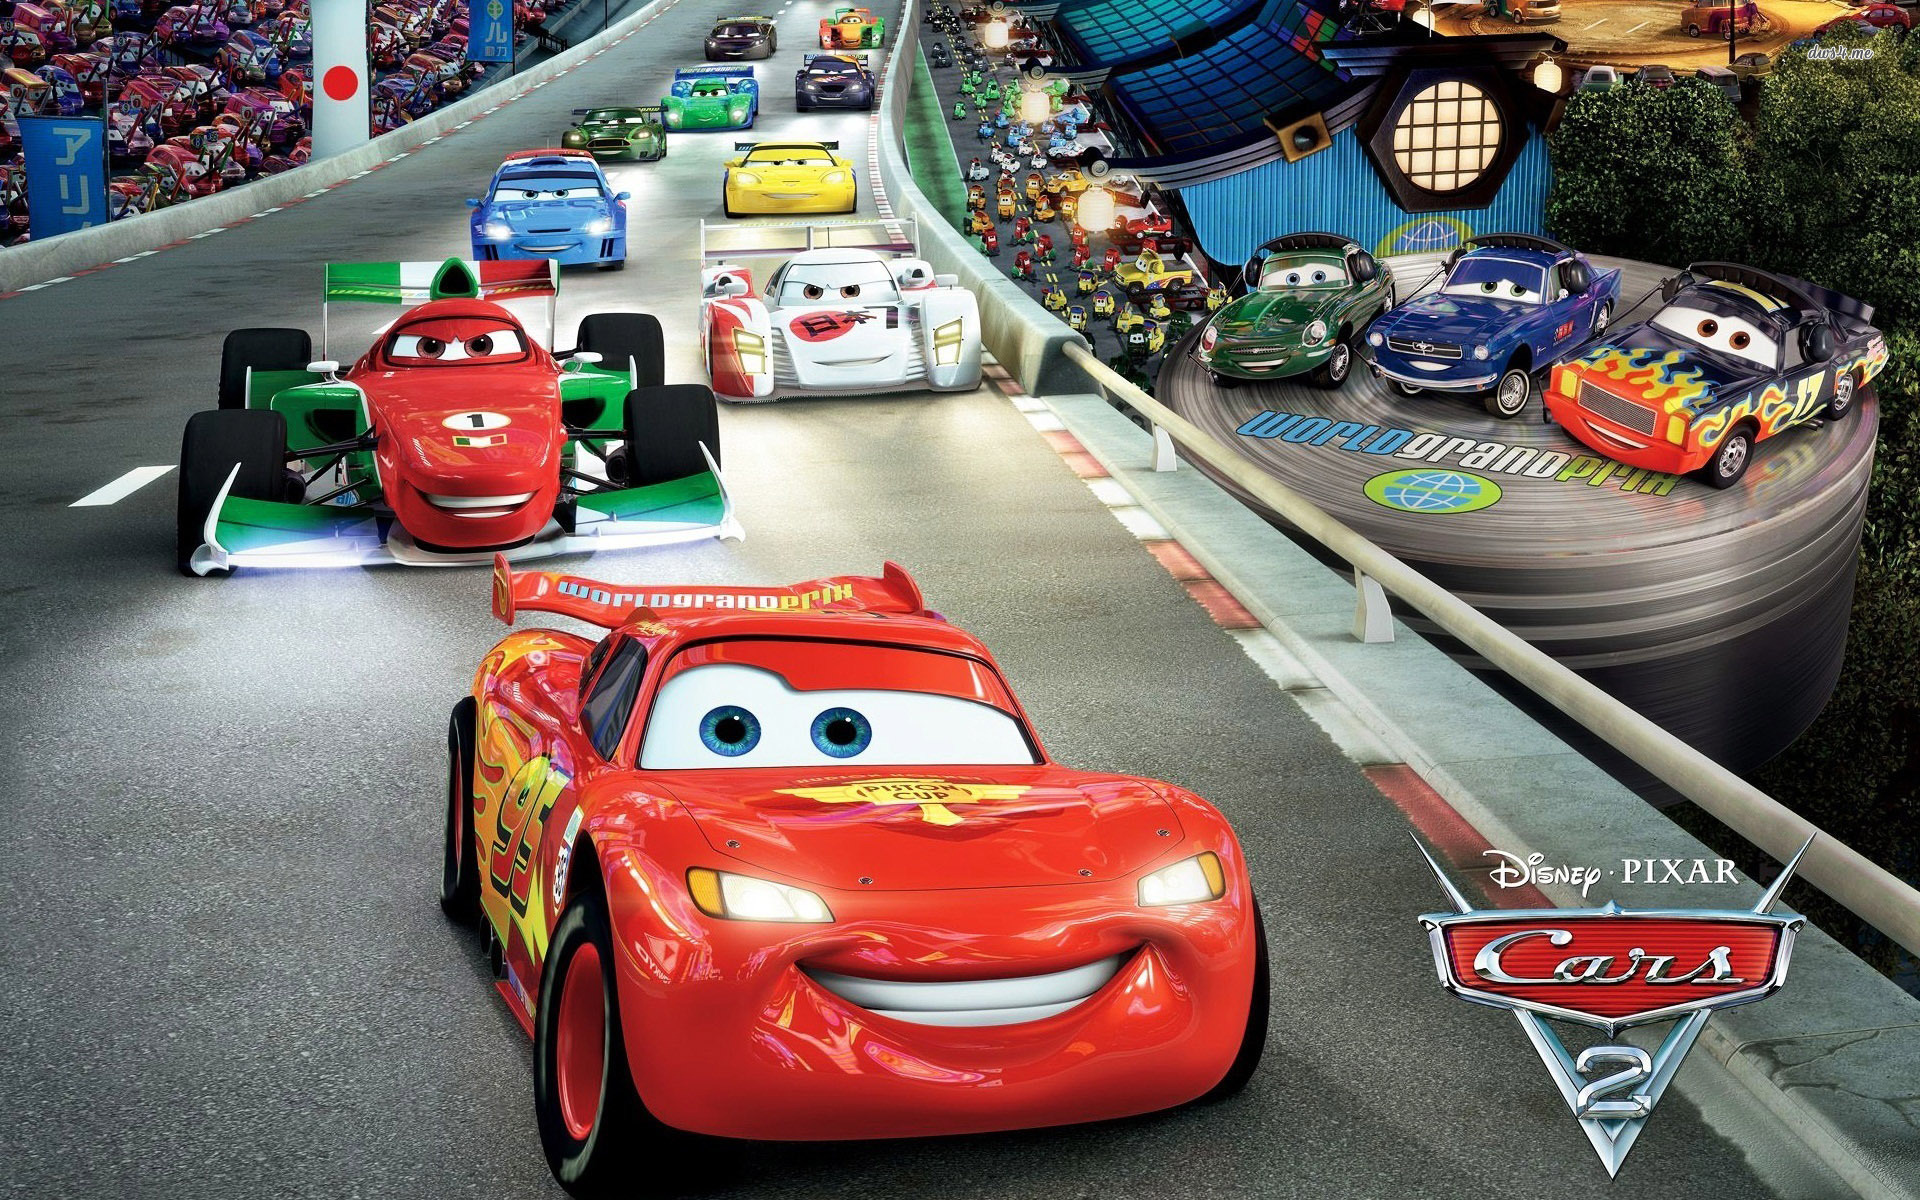 1920x1200 - Wallpaper Cars Cartoon 19